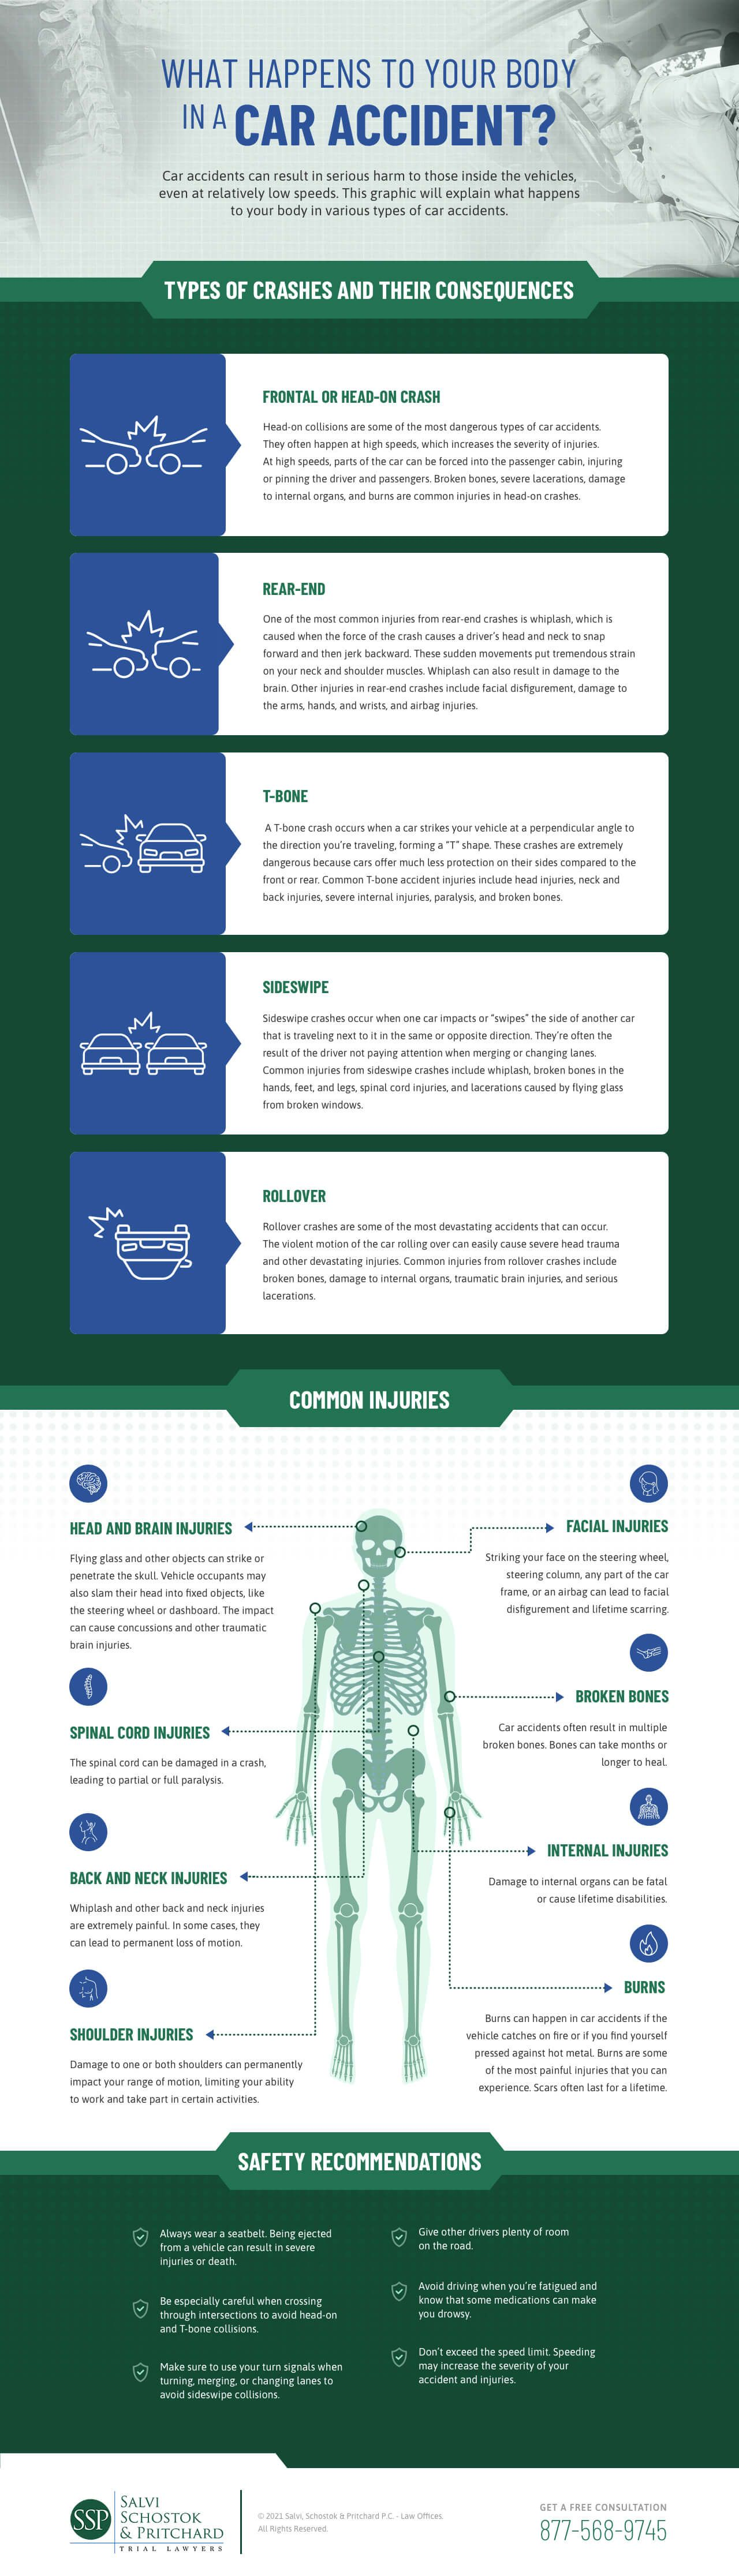 What Happens To Your Body In A Car Accident?